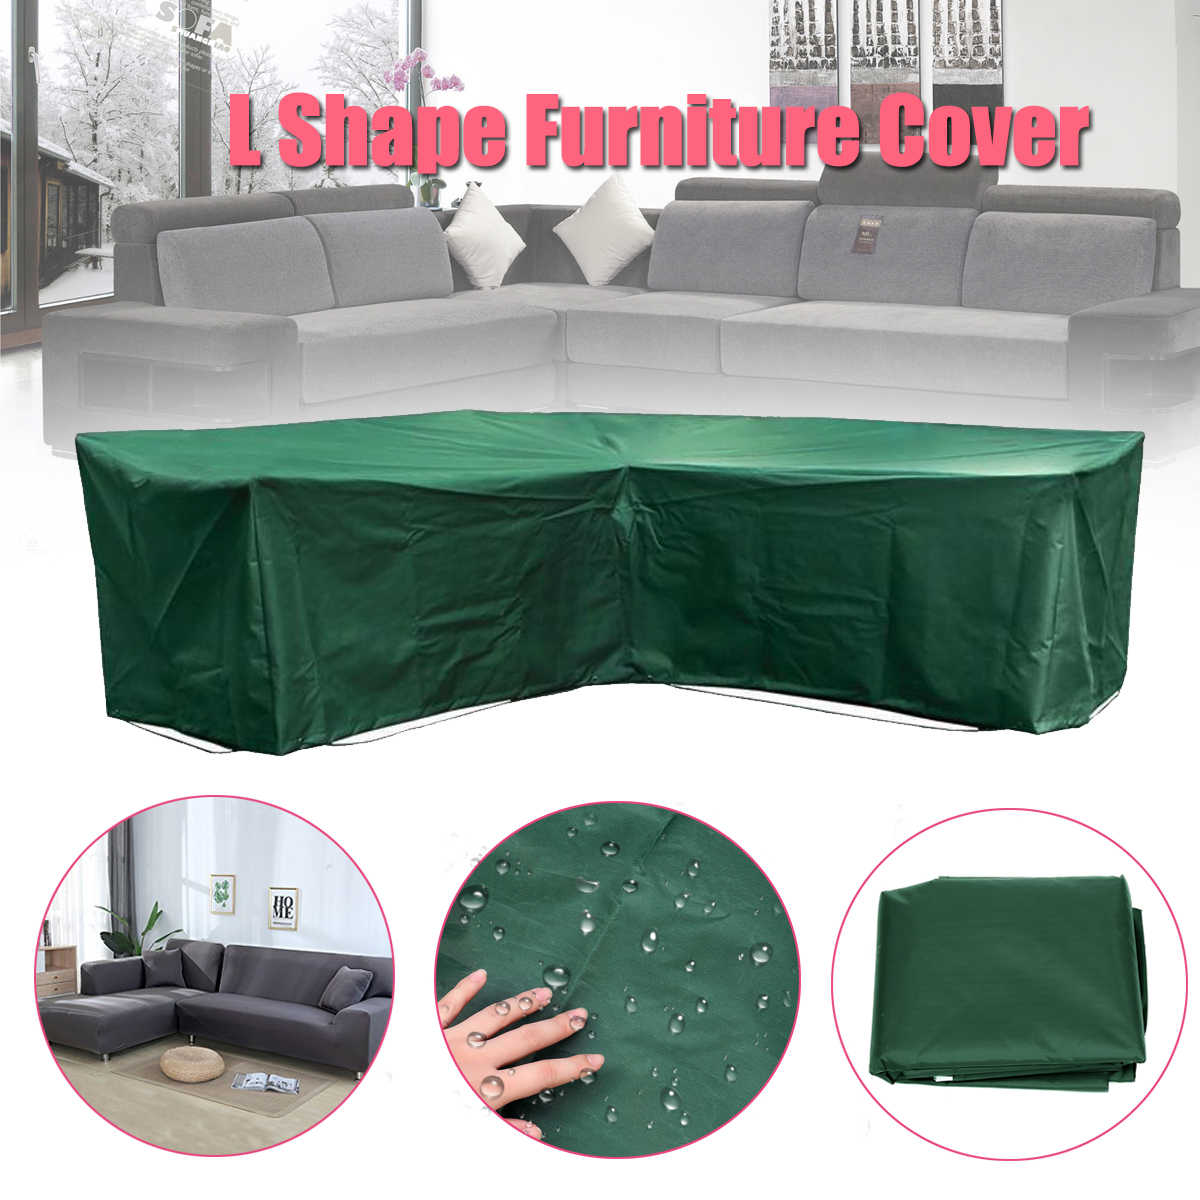 Waterproof Outdoor Patio Garden Furniture Cover Rain Snow Chair Wicker Sofa Table Dust Proof Set Protector Fabric